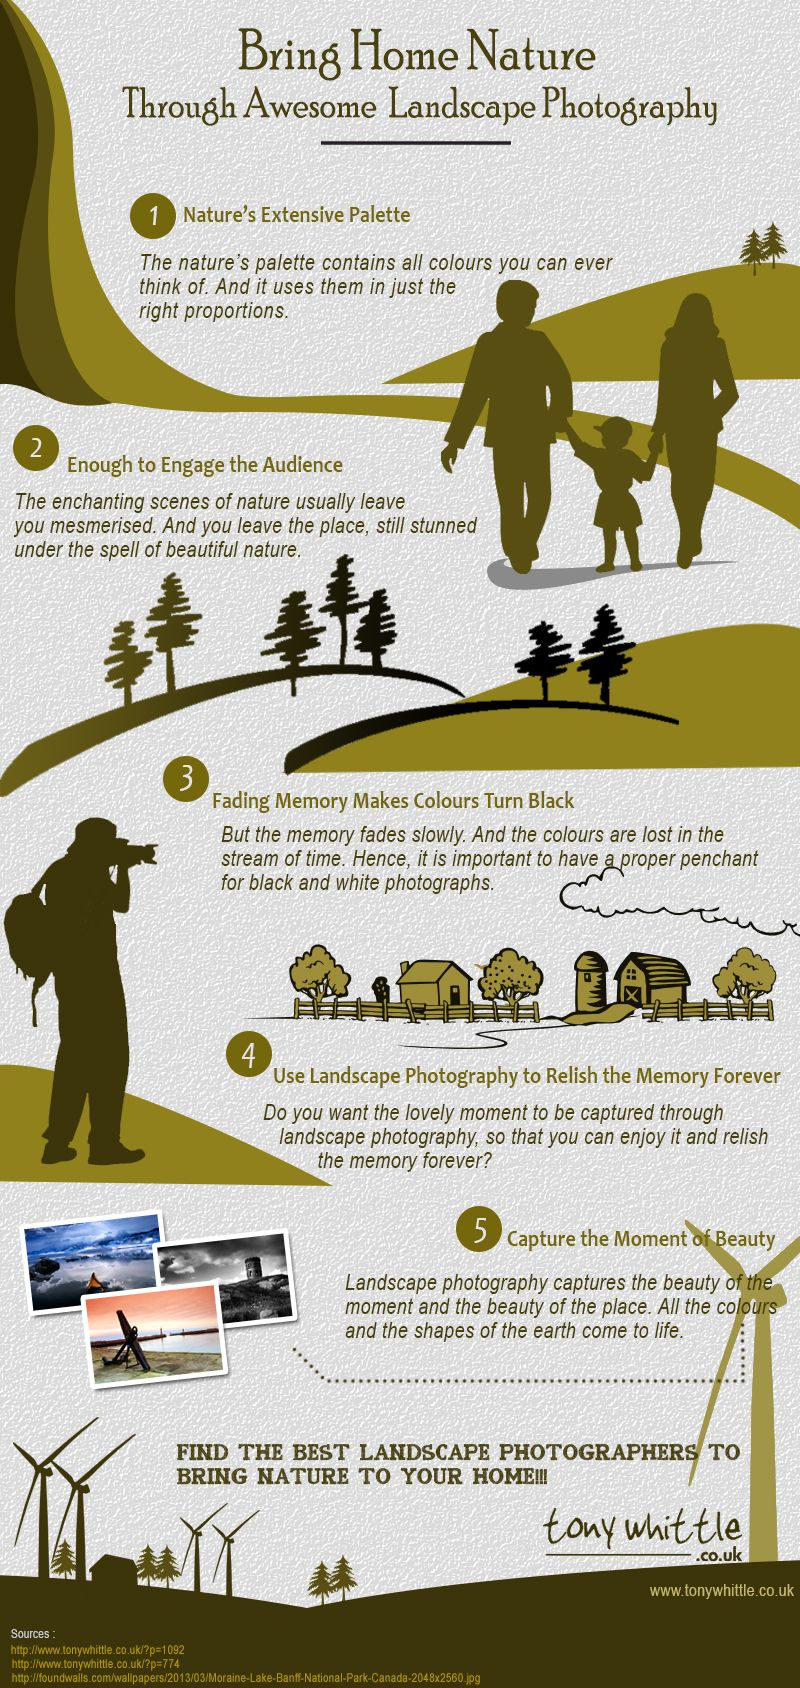 Landscape Photography and Nature (Infographic) image LANDSCAPE PHOTOGRAPHY AND NATURE